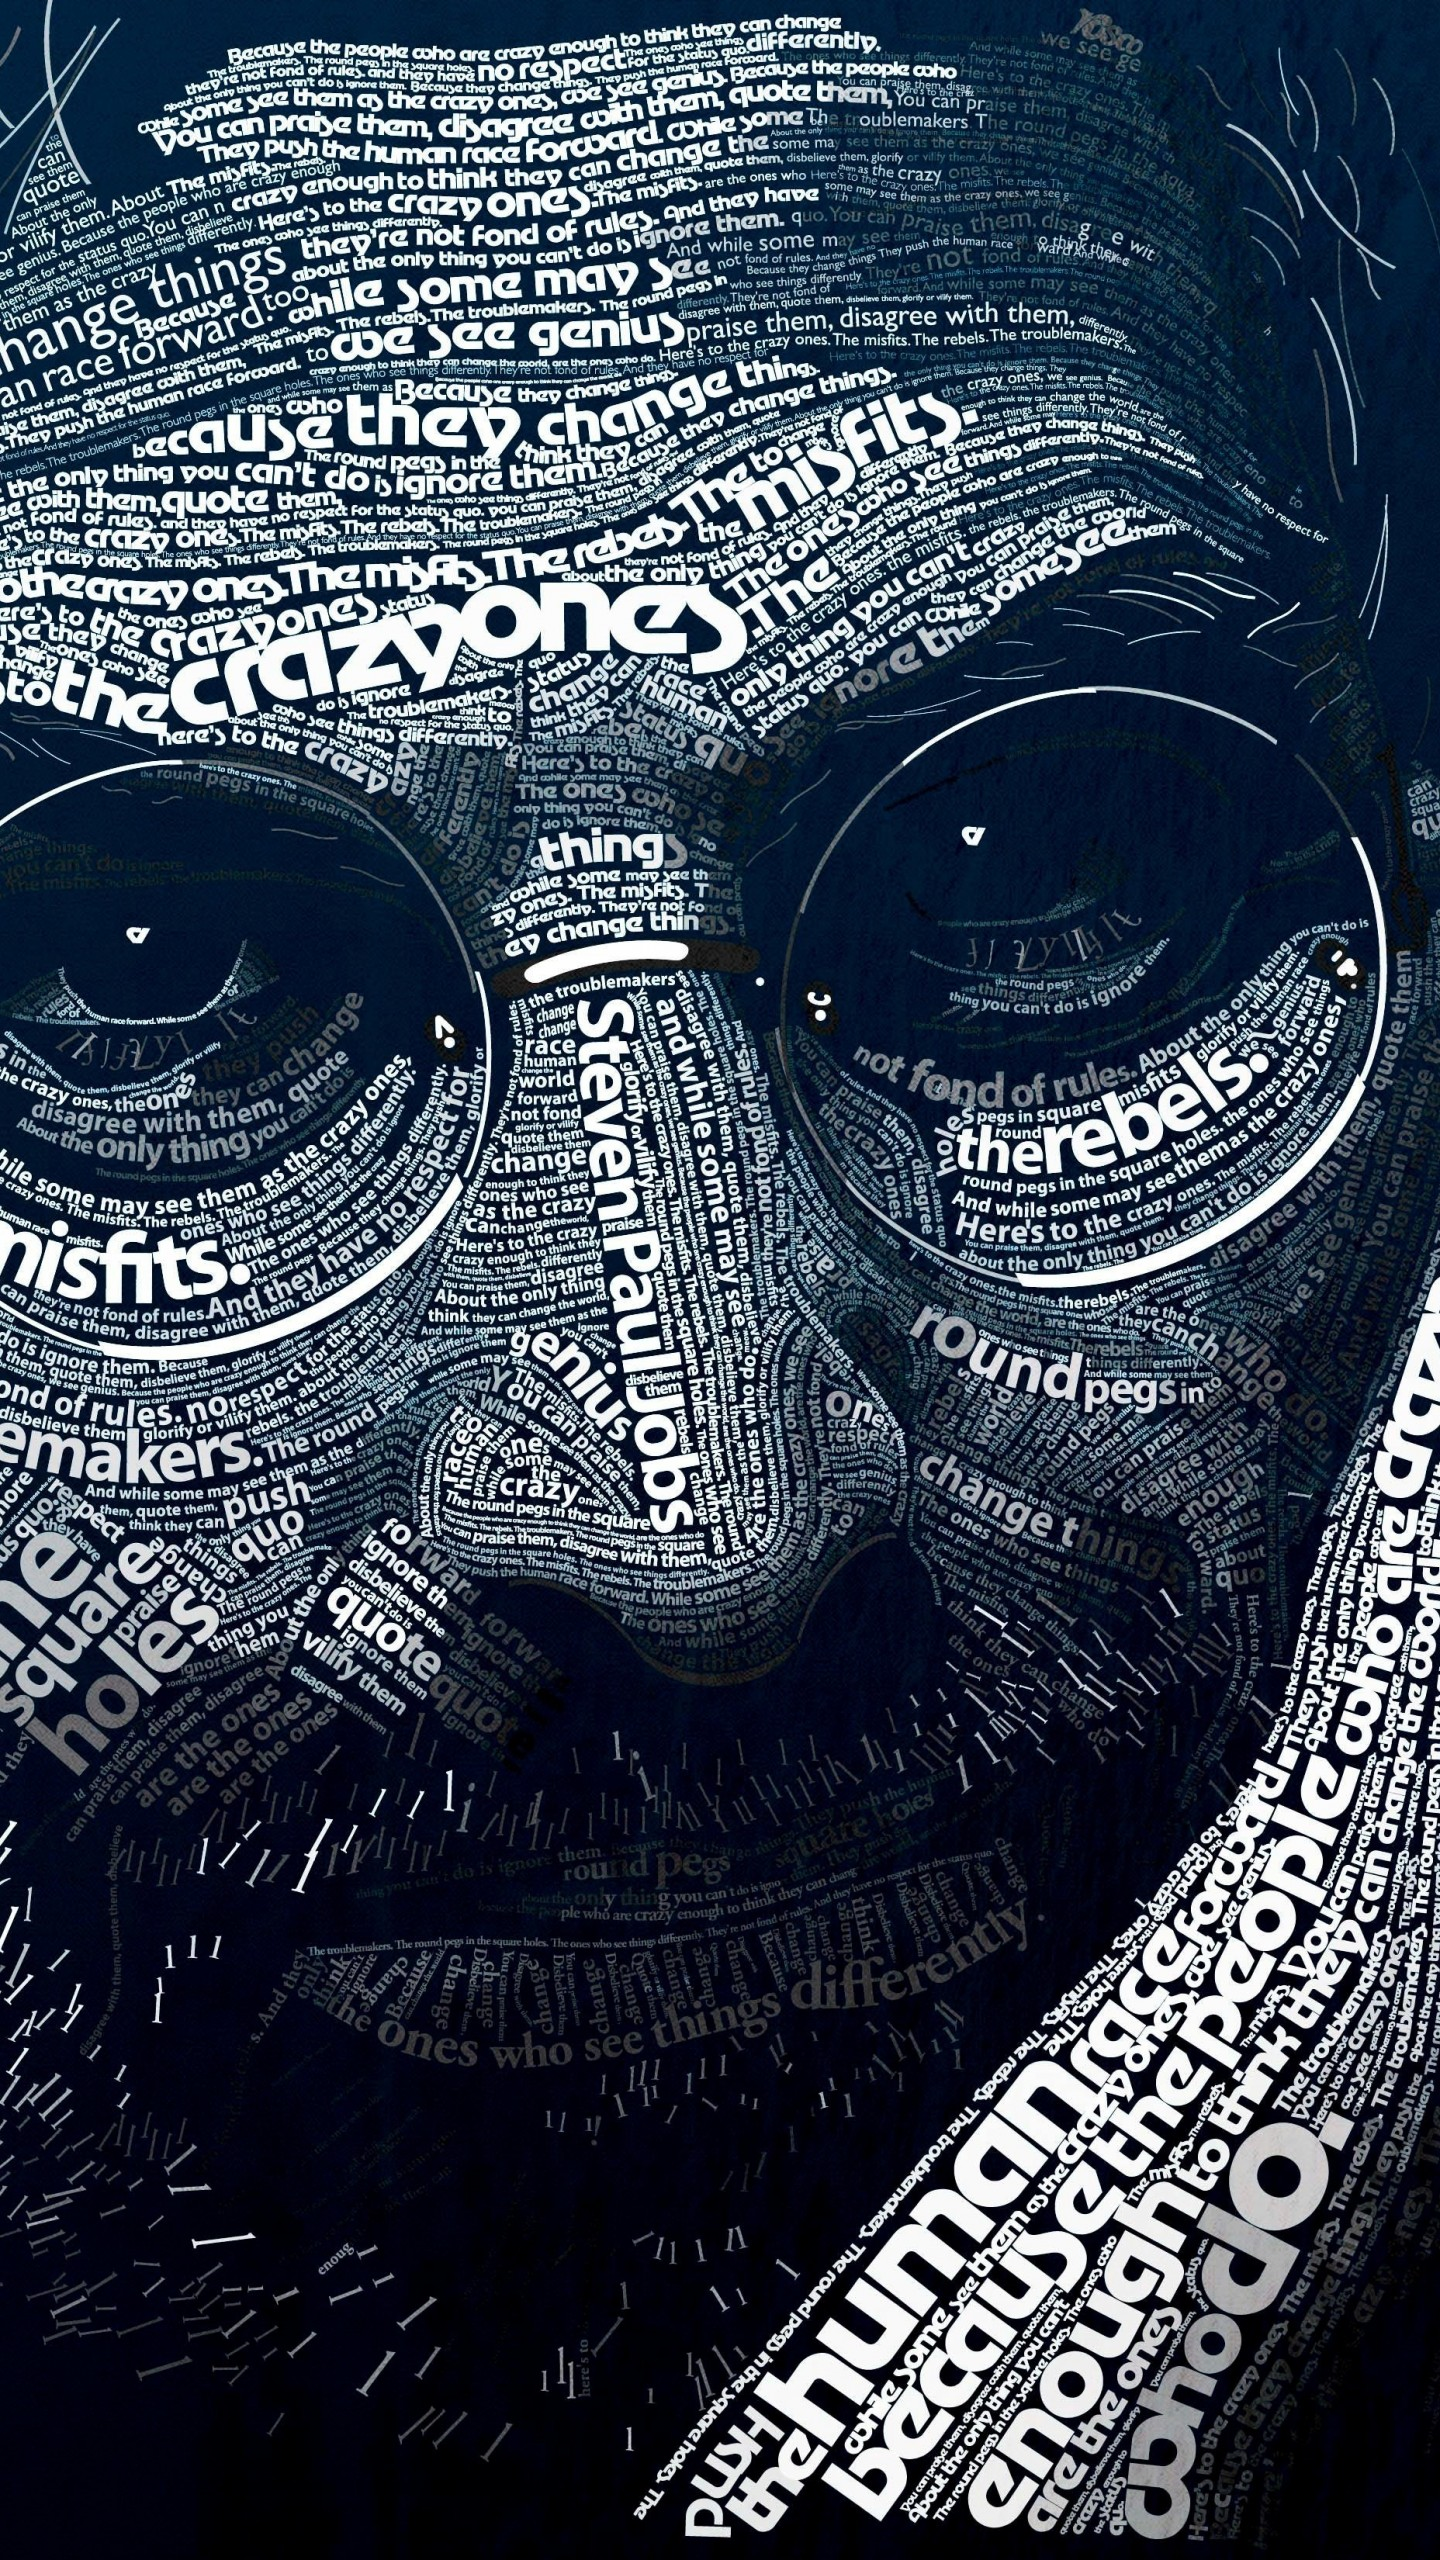 Steve Jobs Typographic Portrait Wallpaper for LG G3